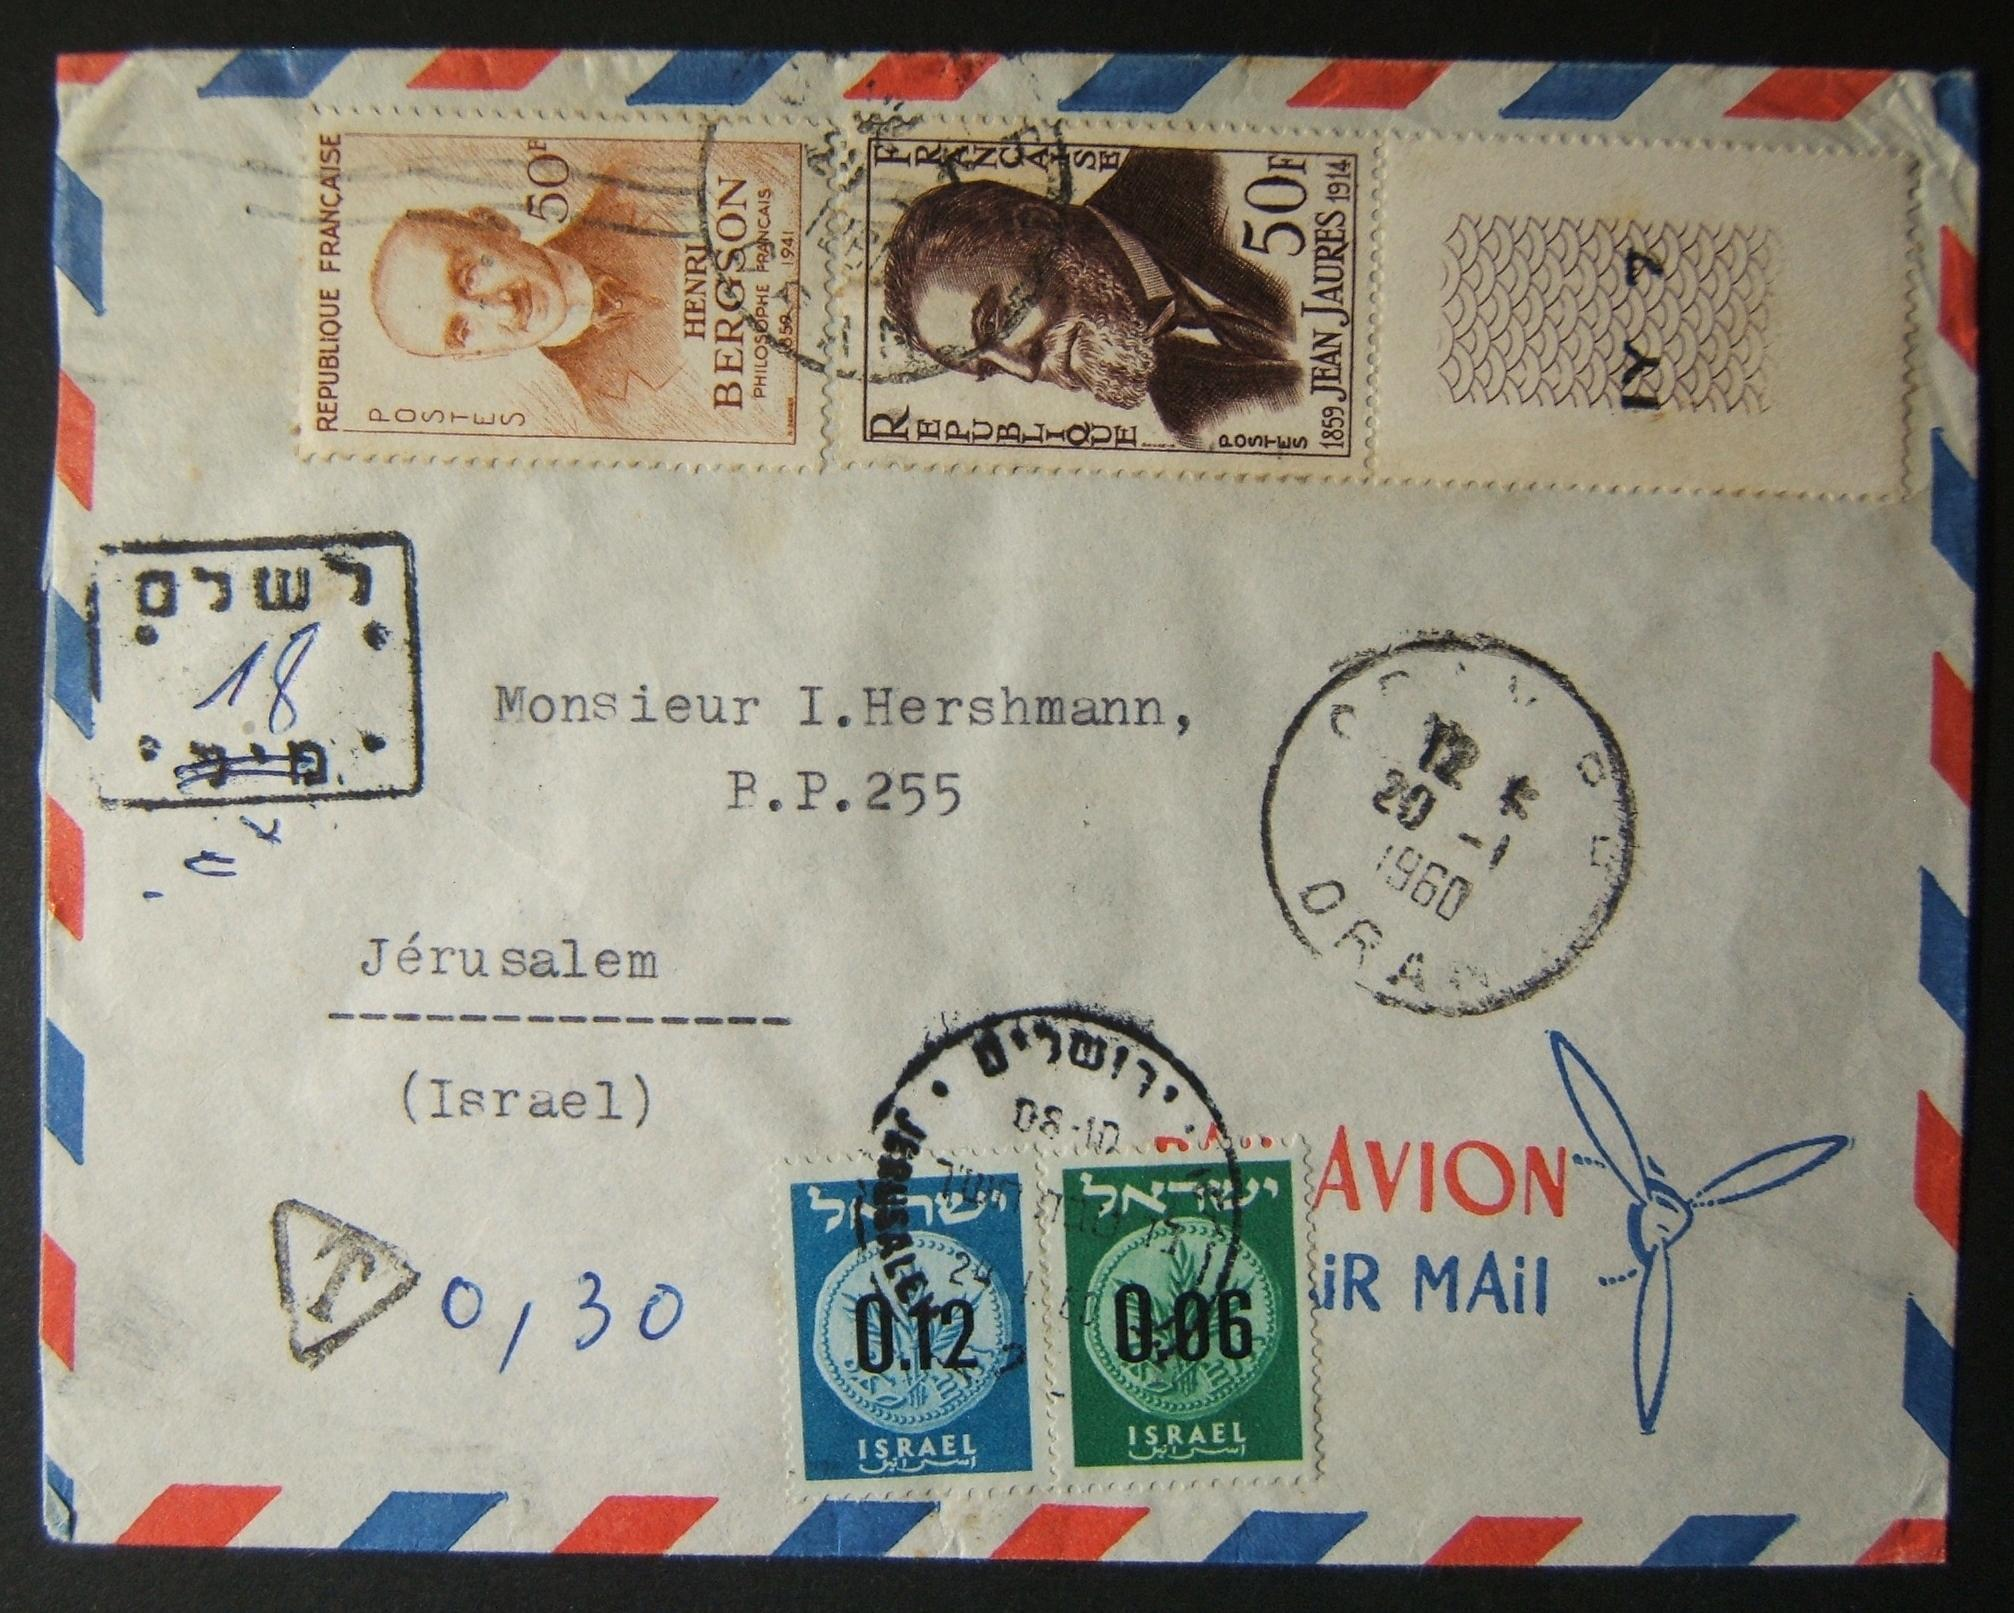 1960 incoming French taxed mail / early Israeli Lira franking: 20-1-1960 airmail cover ex ORAN to JERUSALEM underfranked at 100Fr; taxed 0.18L in Israel, paid 24-1